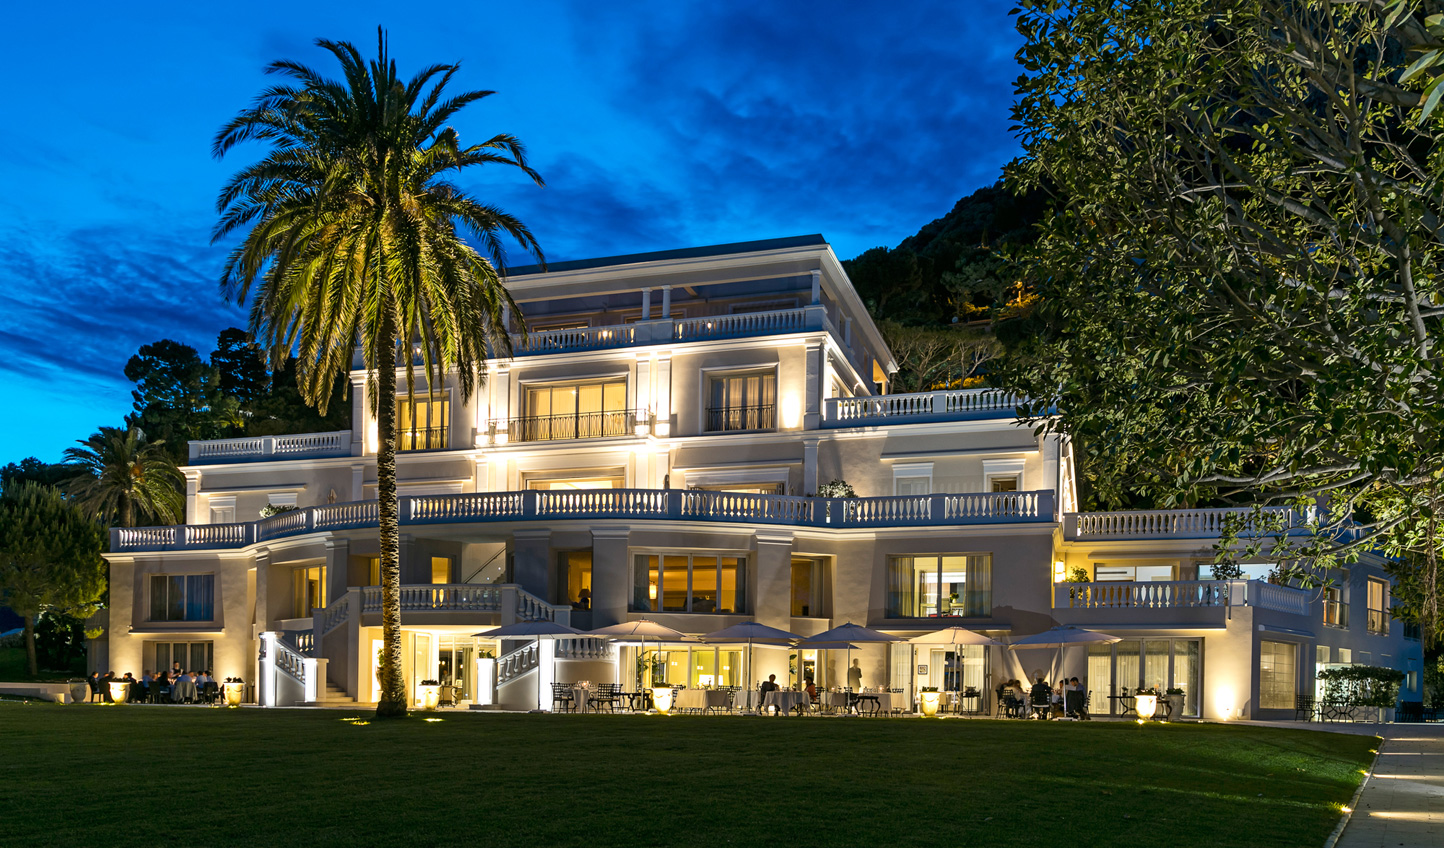 Cap Estel at night is as beautiful as it is during the day